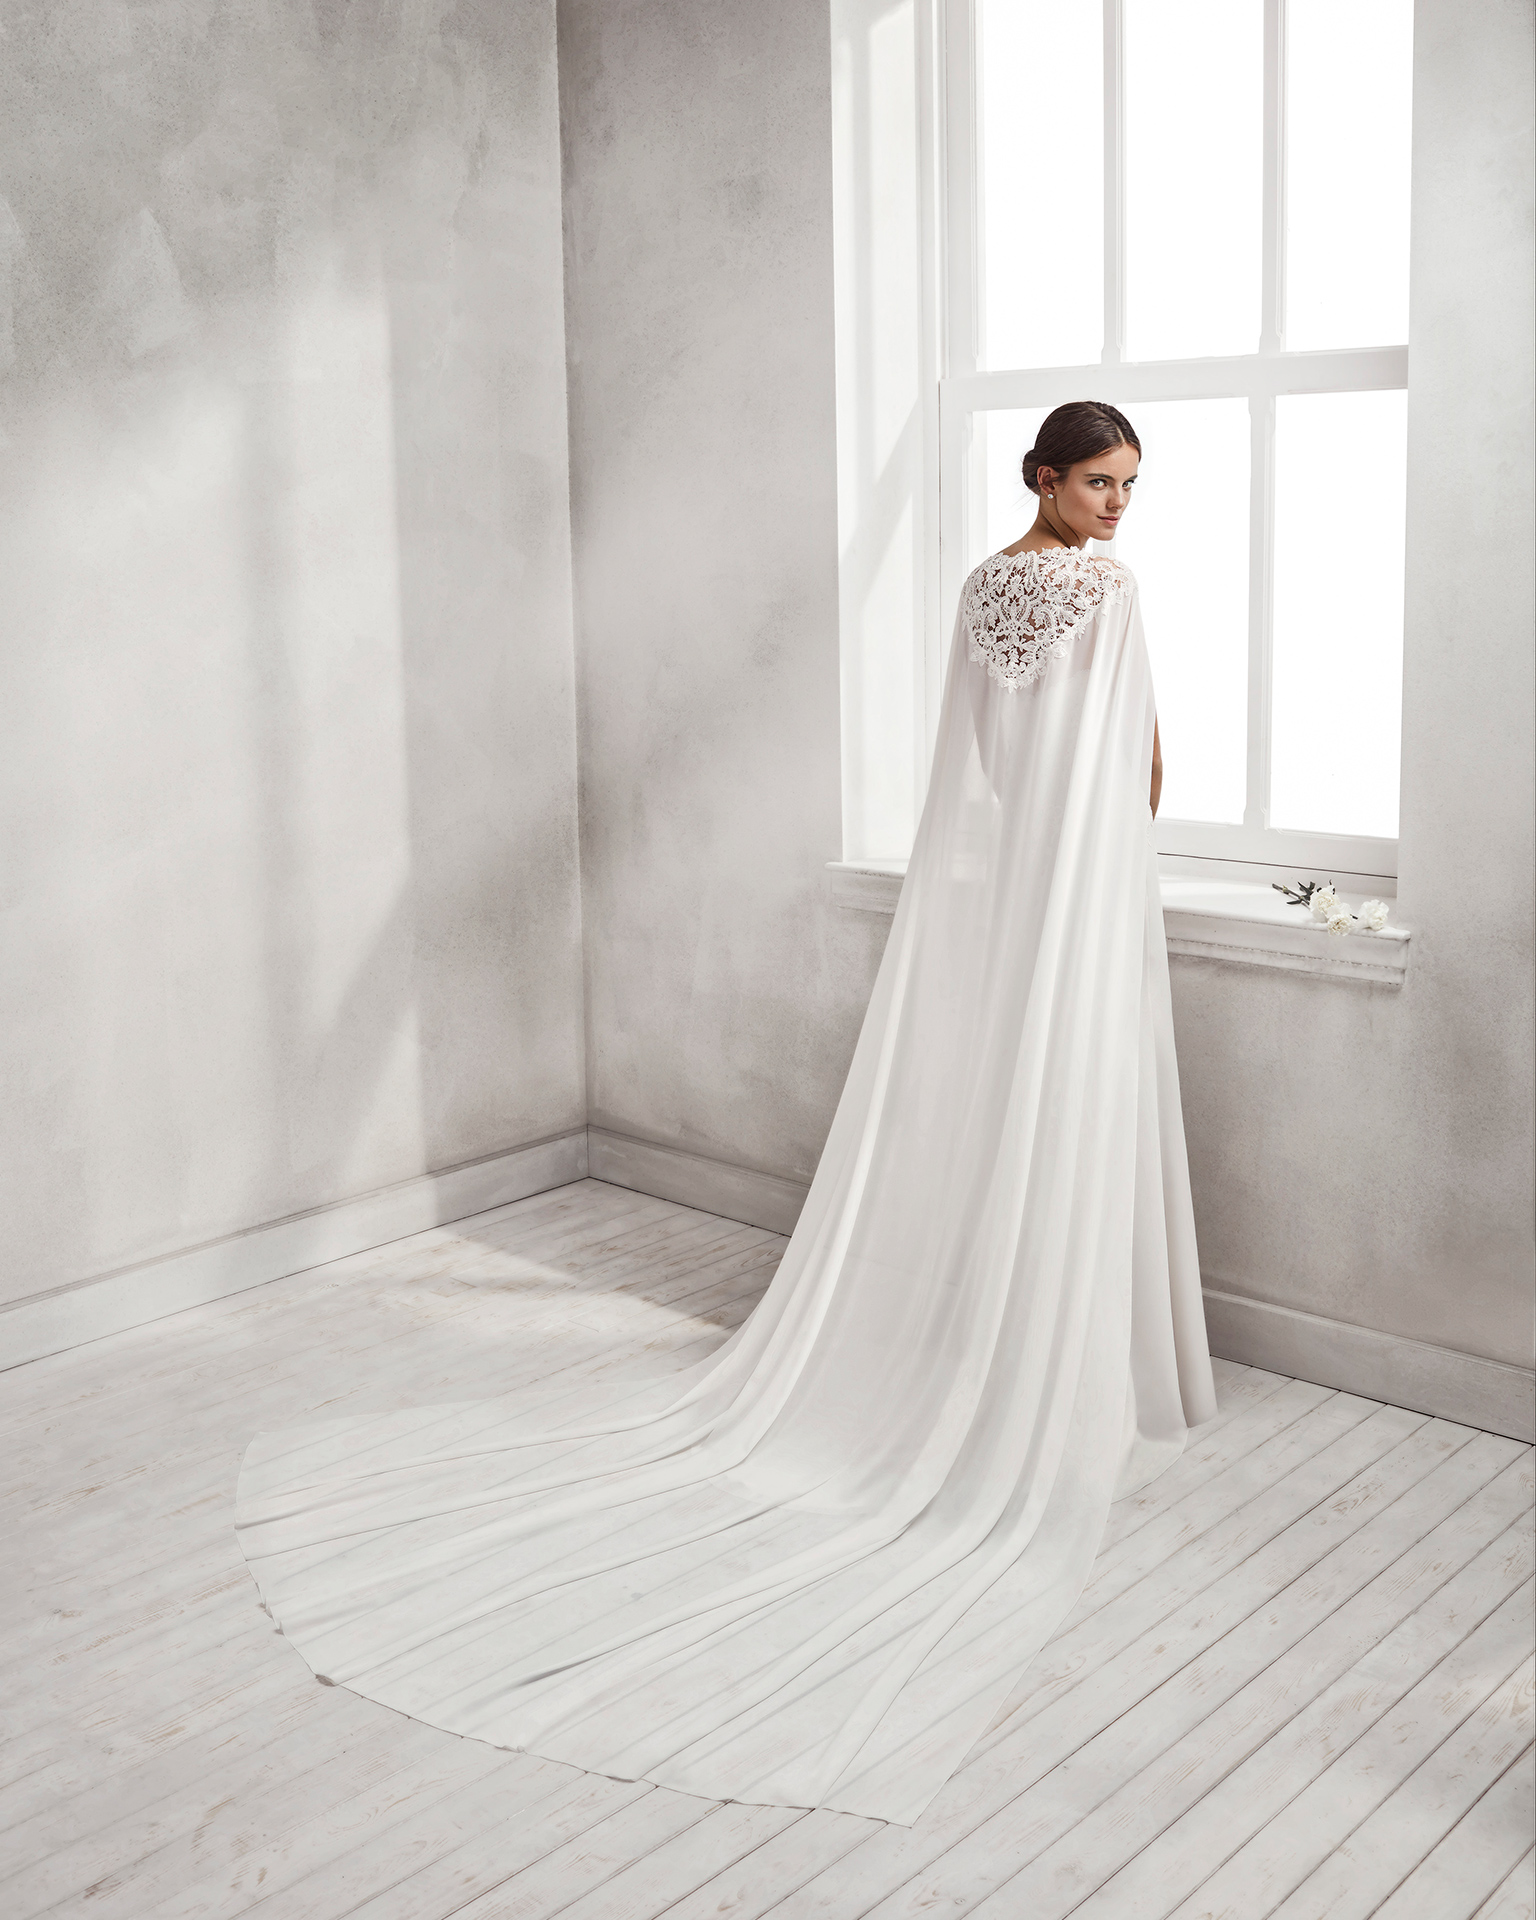 Mermaid-style crepe Georgette and guipure lace wedding dress with sweetheart neckline and cape.